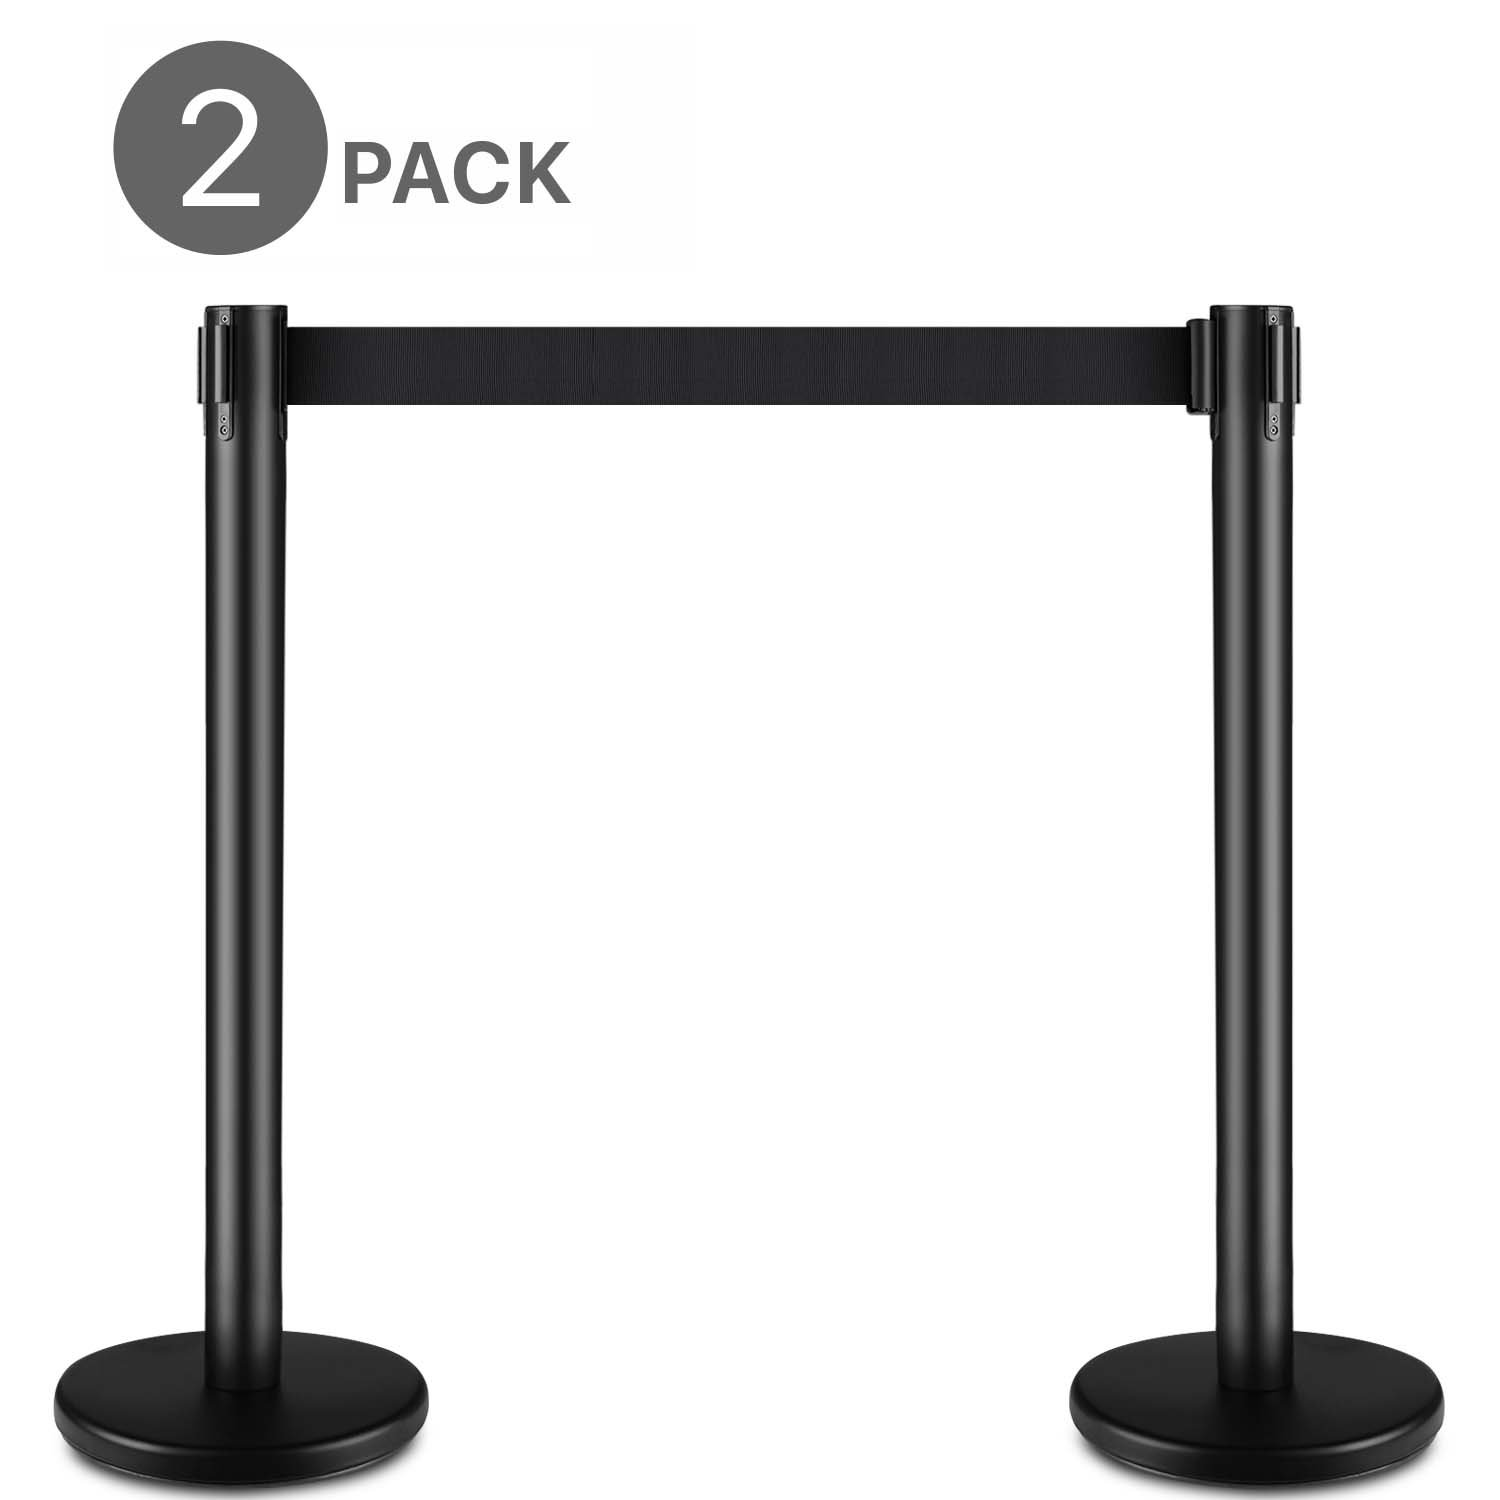 Flexzion Sentry Stanchion With 35.4'' Height, 6.6' Feet Retractable Belt Set of 2 Posts - Top Crowd Control Queue Pole Barrier Ideal for Indoor Outside Theaters Museums Bank Hotel Trade Decoration